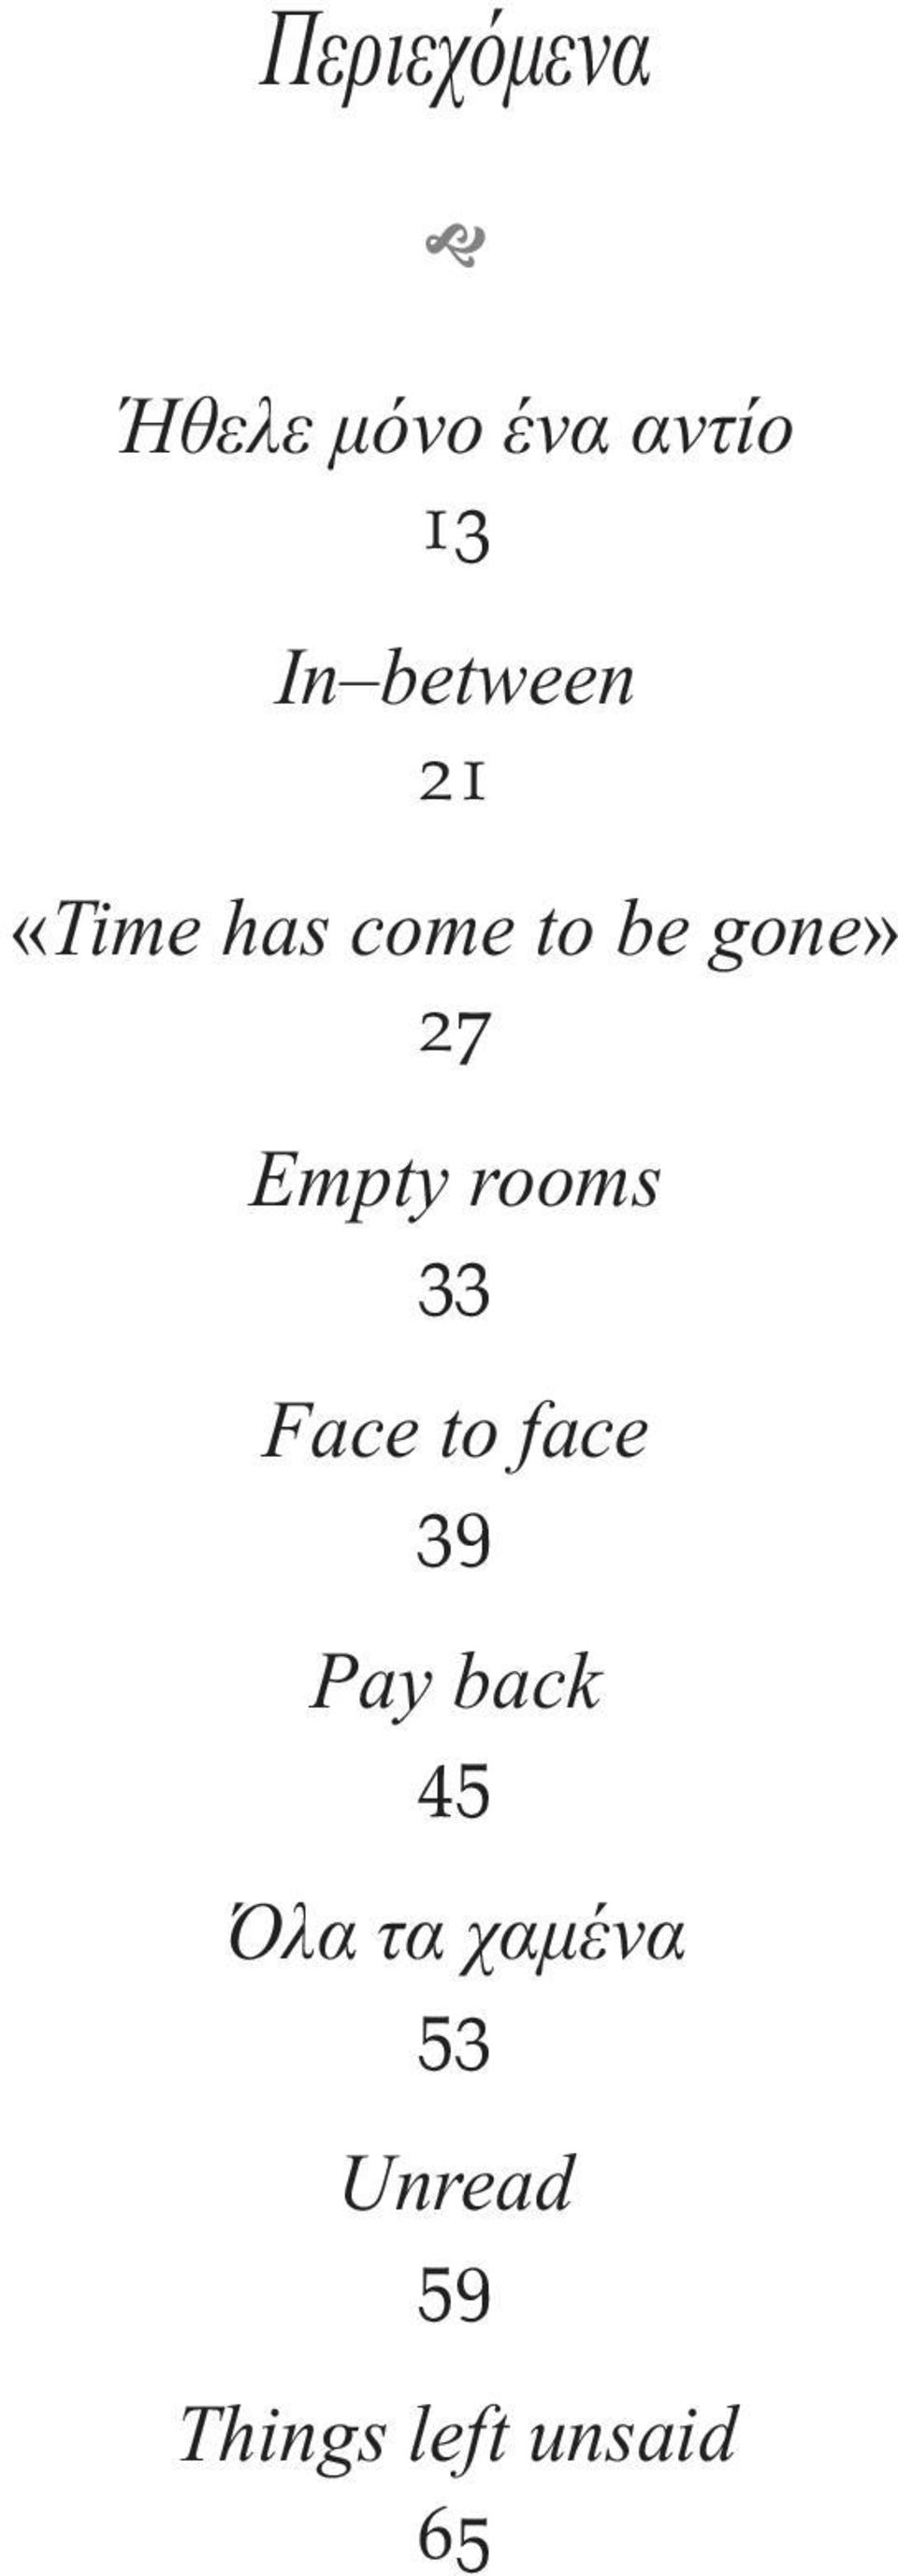 Empty rooms 33 Face to face 39 Pay back 45